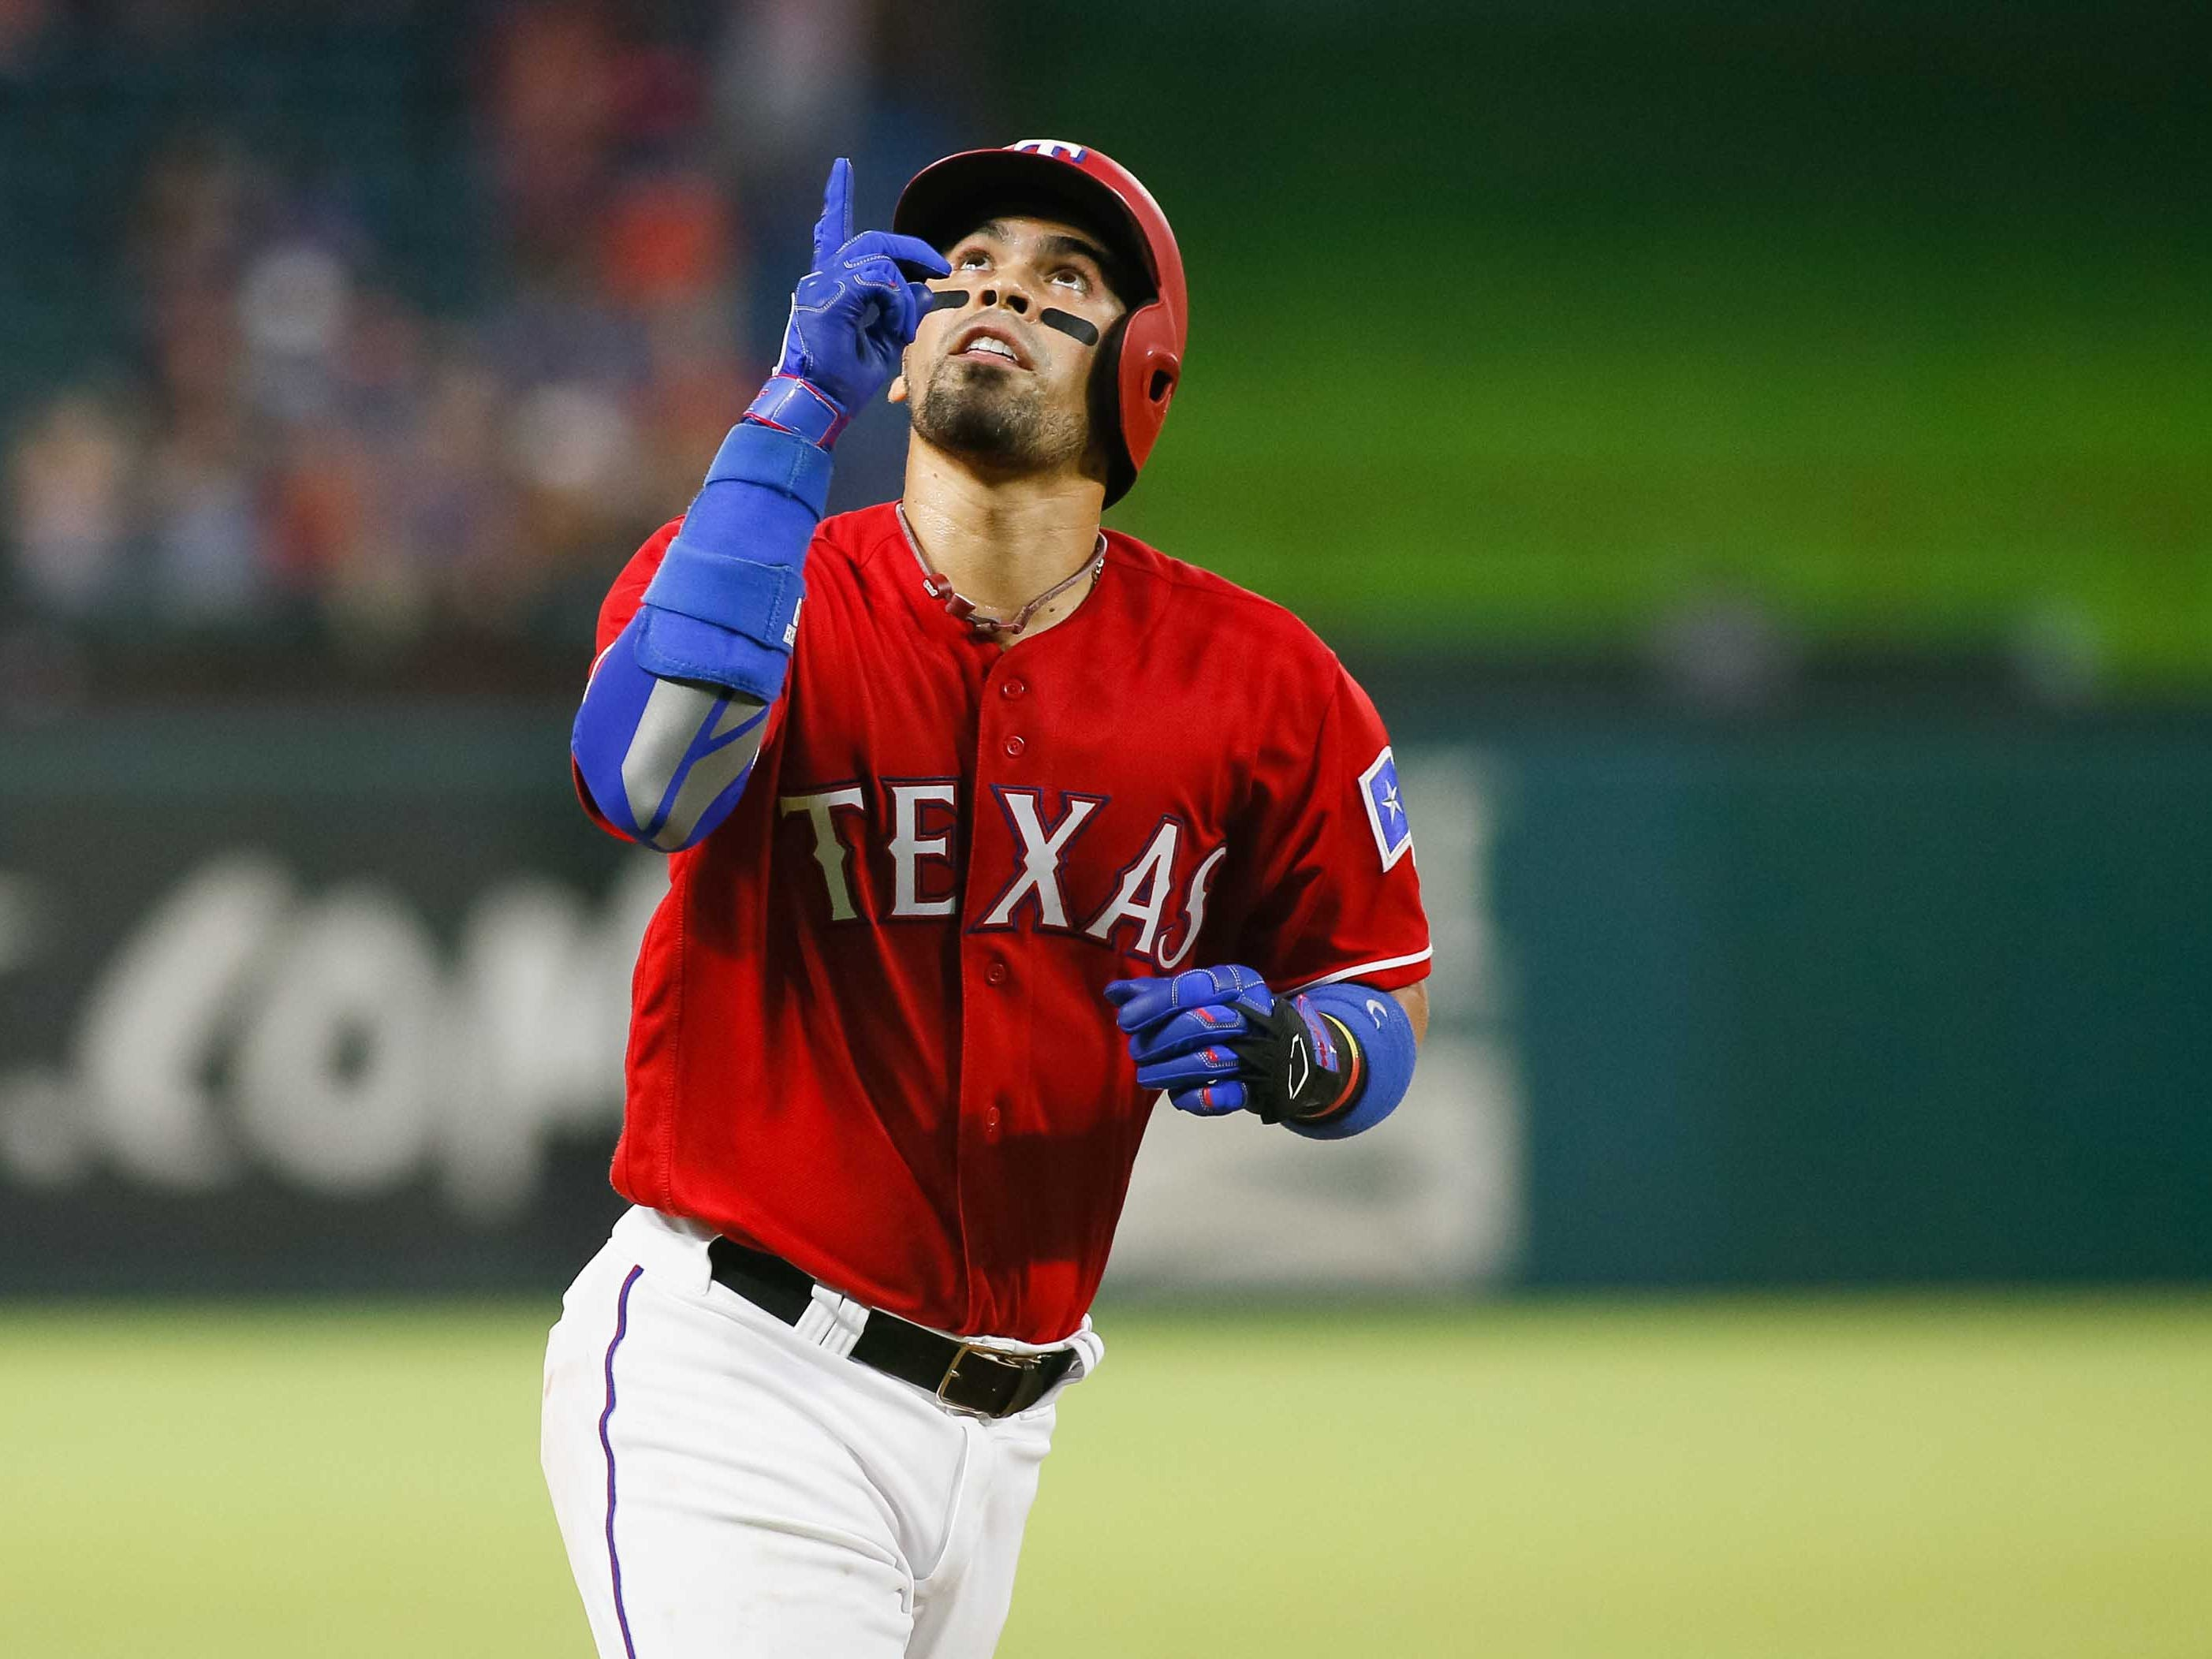 Aug 13, 2018; Arlington, TX, USA; Texas Rangers catcher Robinson Chirinos (61) reacts as he rounds third base after hitting a three-run homerun in the fourth inning against the Arizona Diamondbacks at Globe Life Park in Arlington. Mandatory Credit: Ray Carlin-USA TODAY Sports